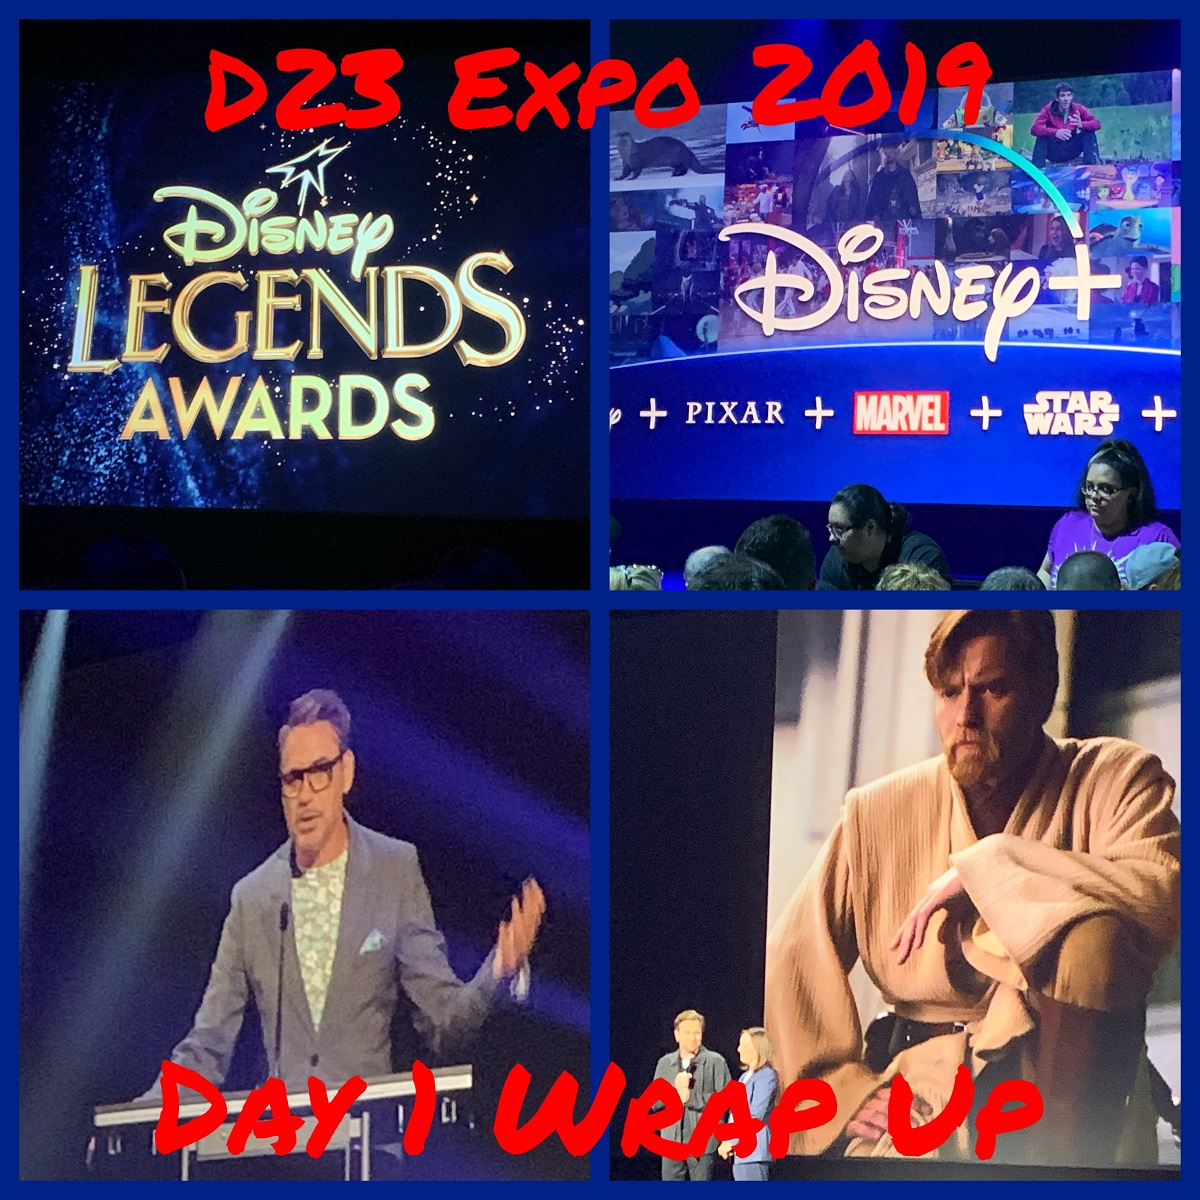 D23 Expo - Day 1 Wrap Up